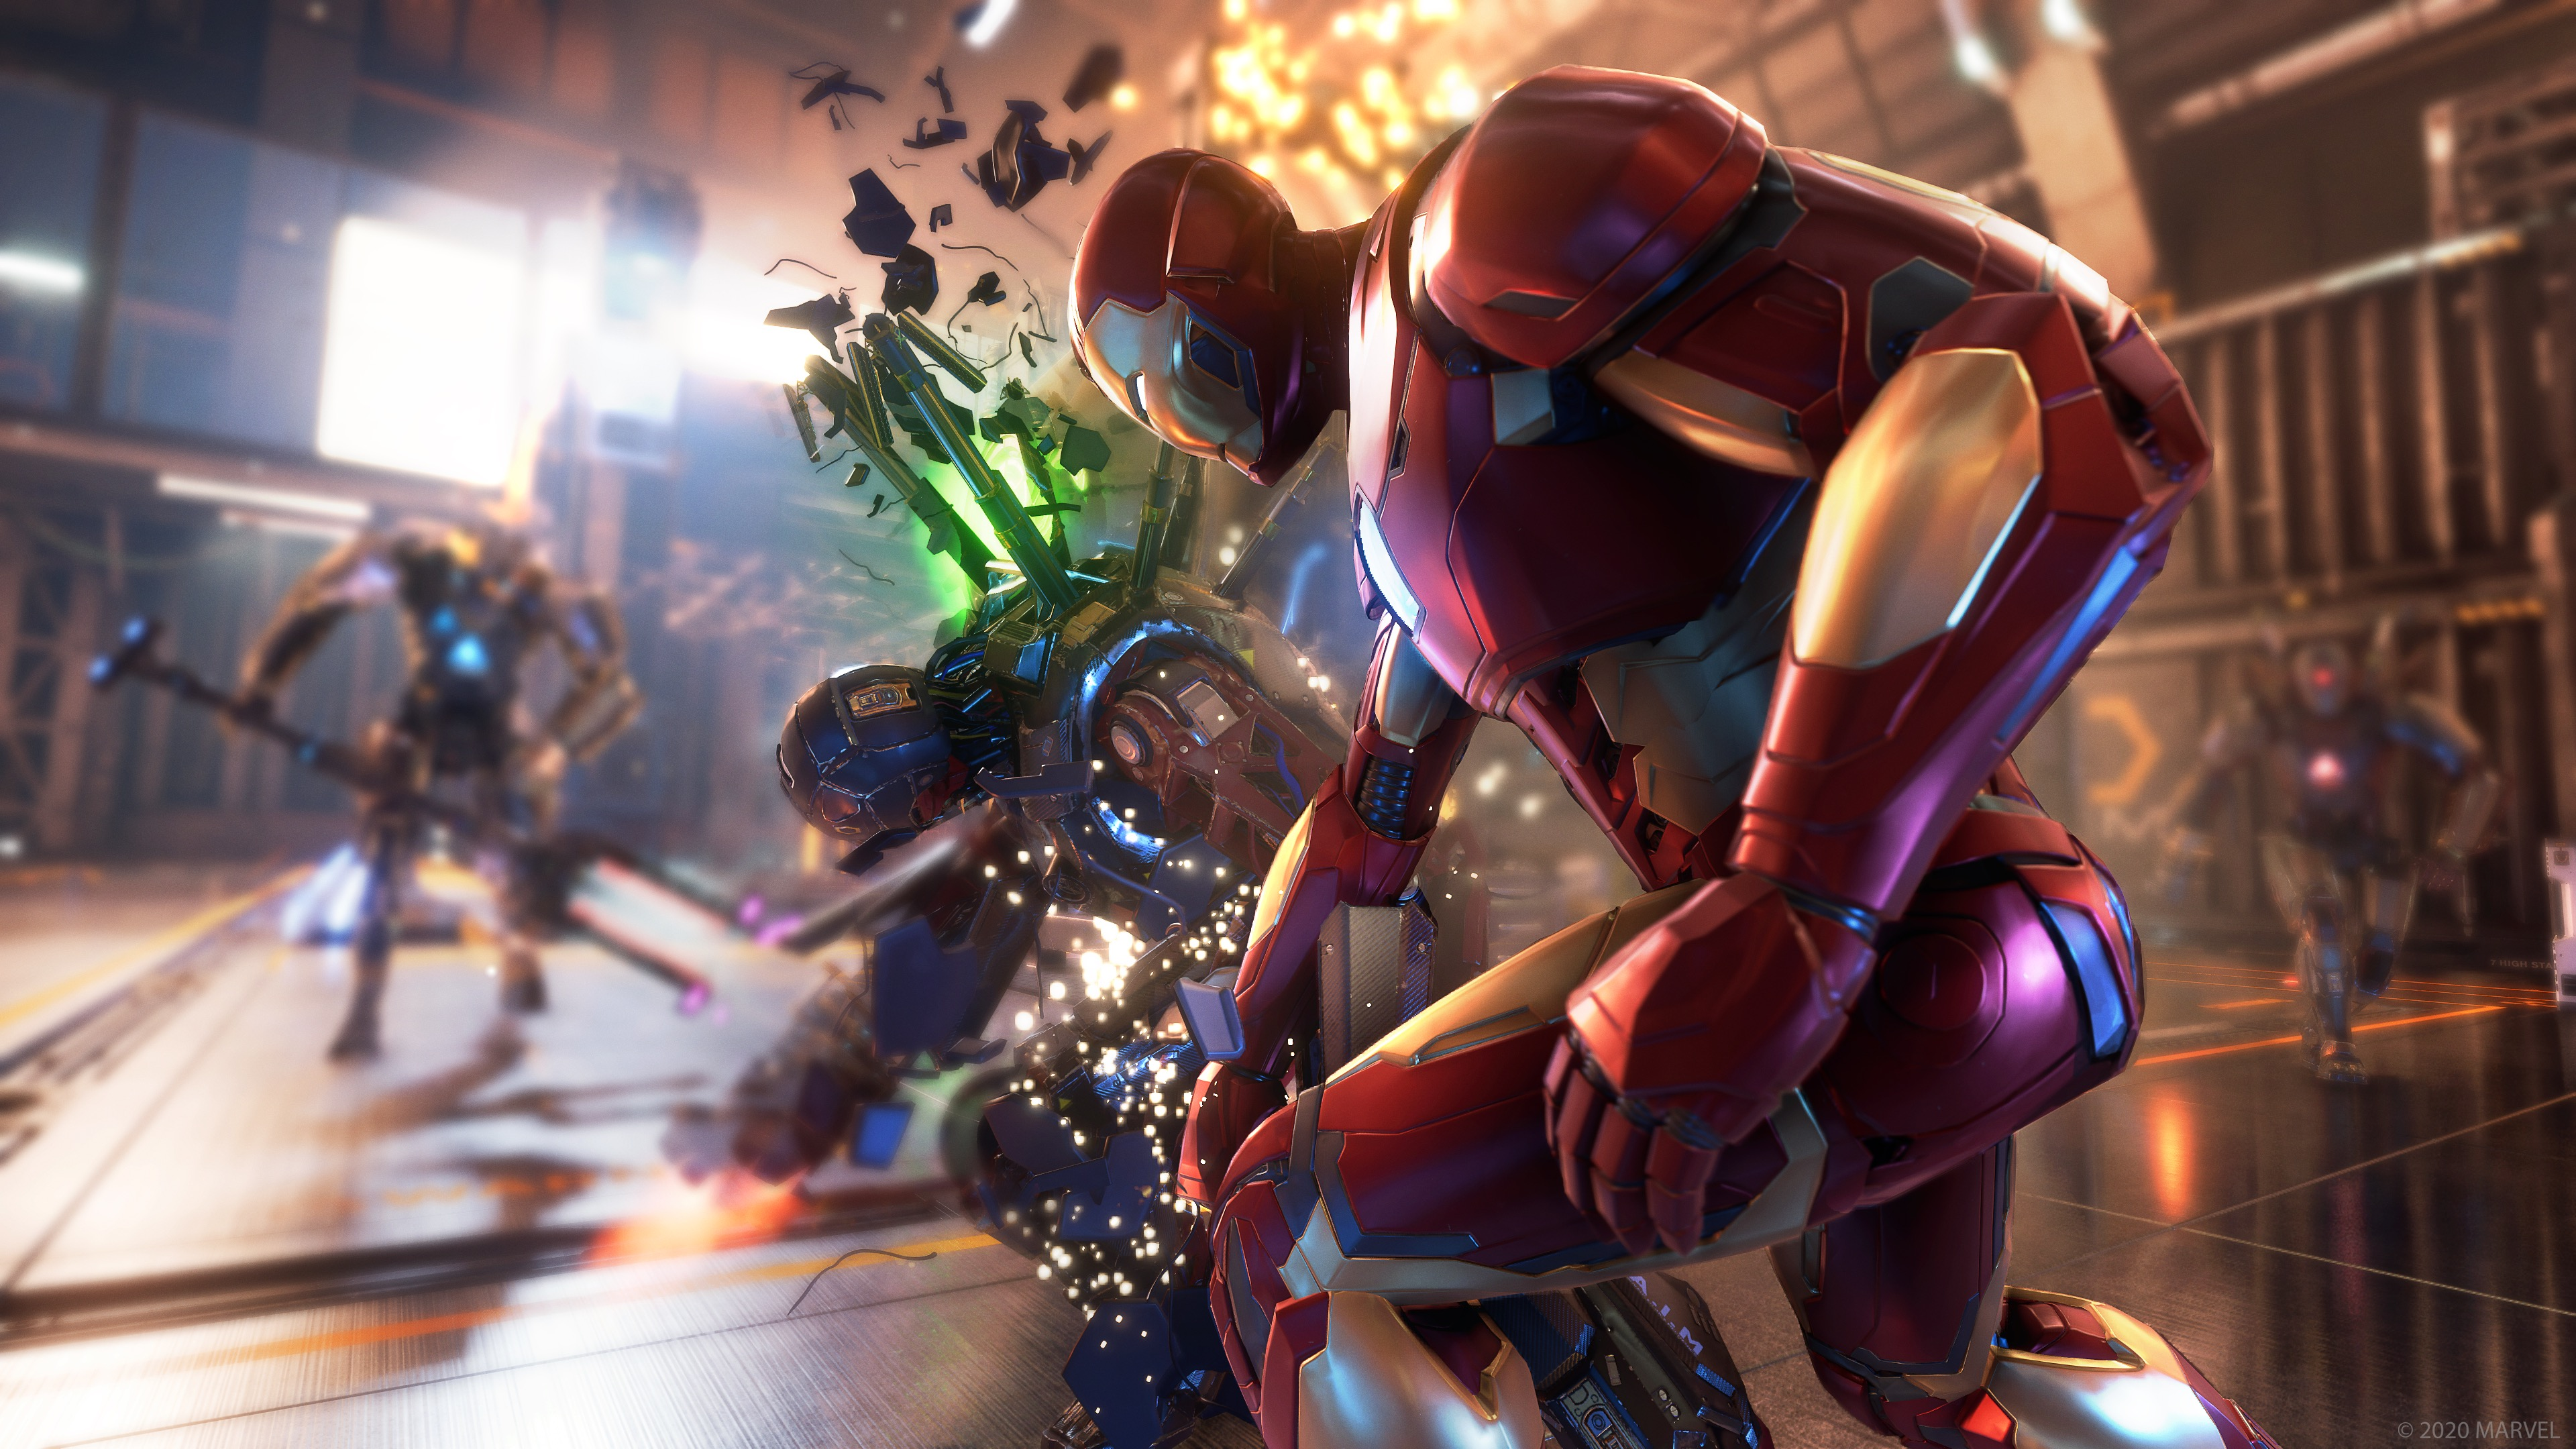 marvels-avengers-ps5-iron-man-playstation-blog-hungary.jpg